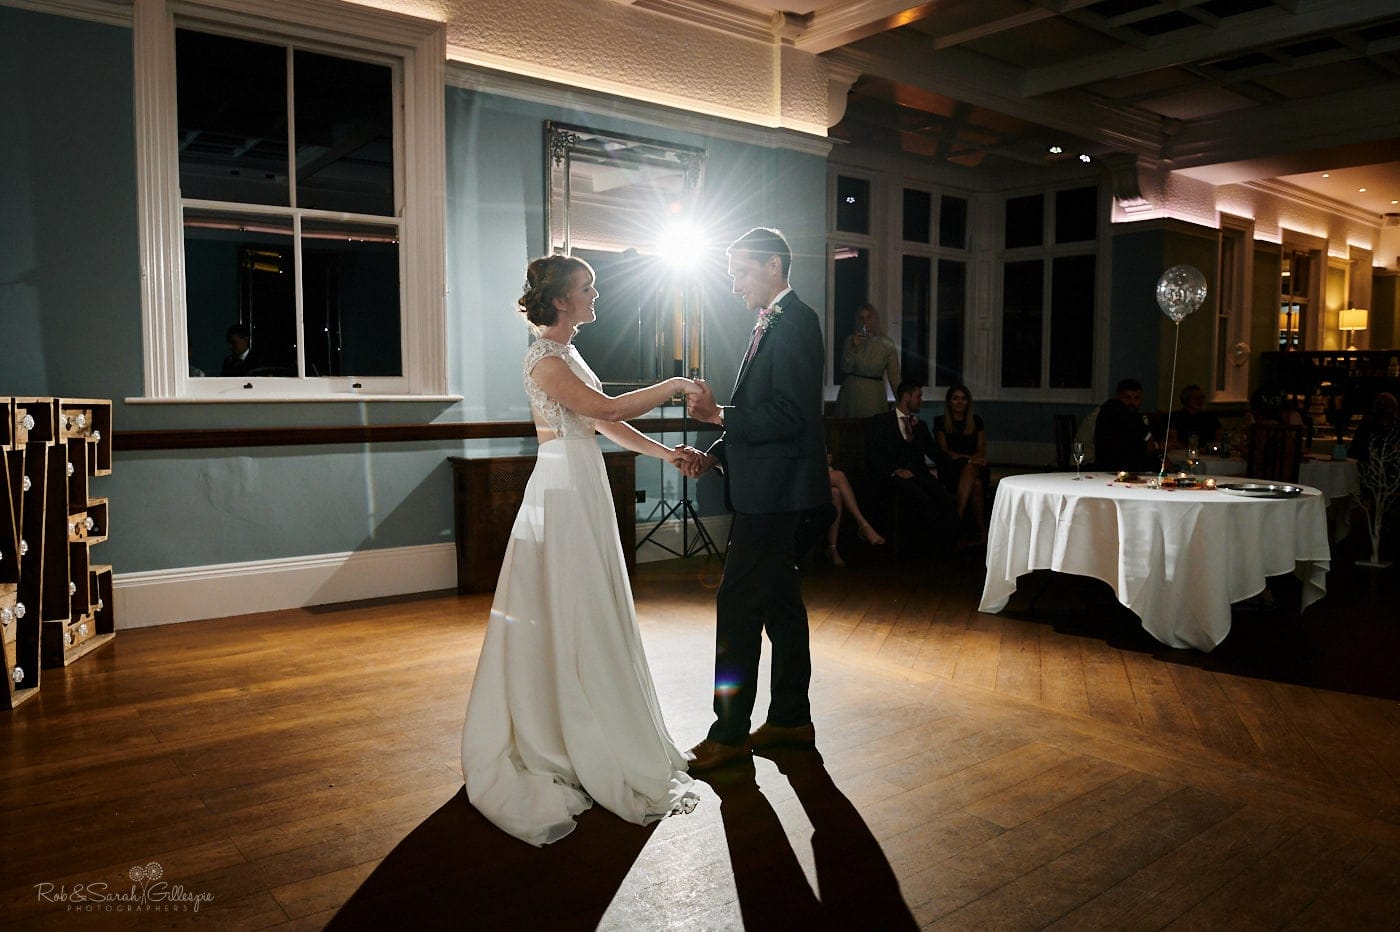 Bride and groom first dance as guests watch